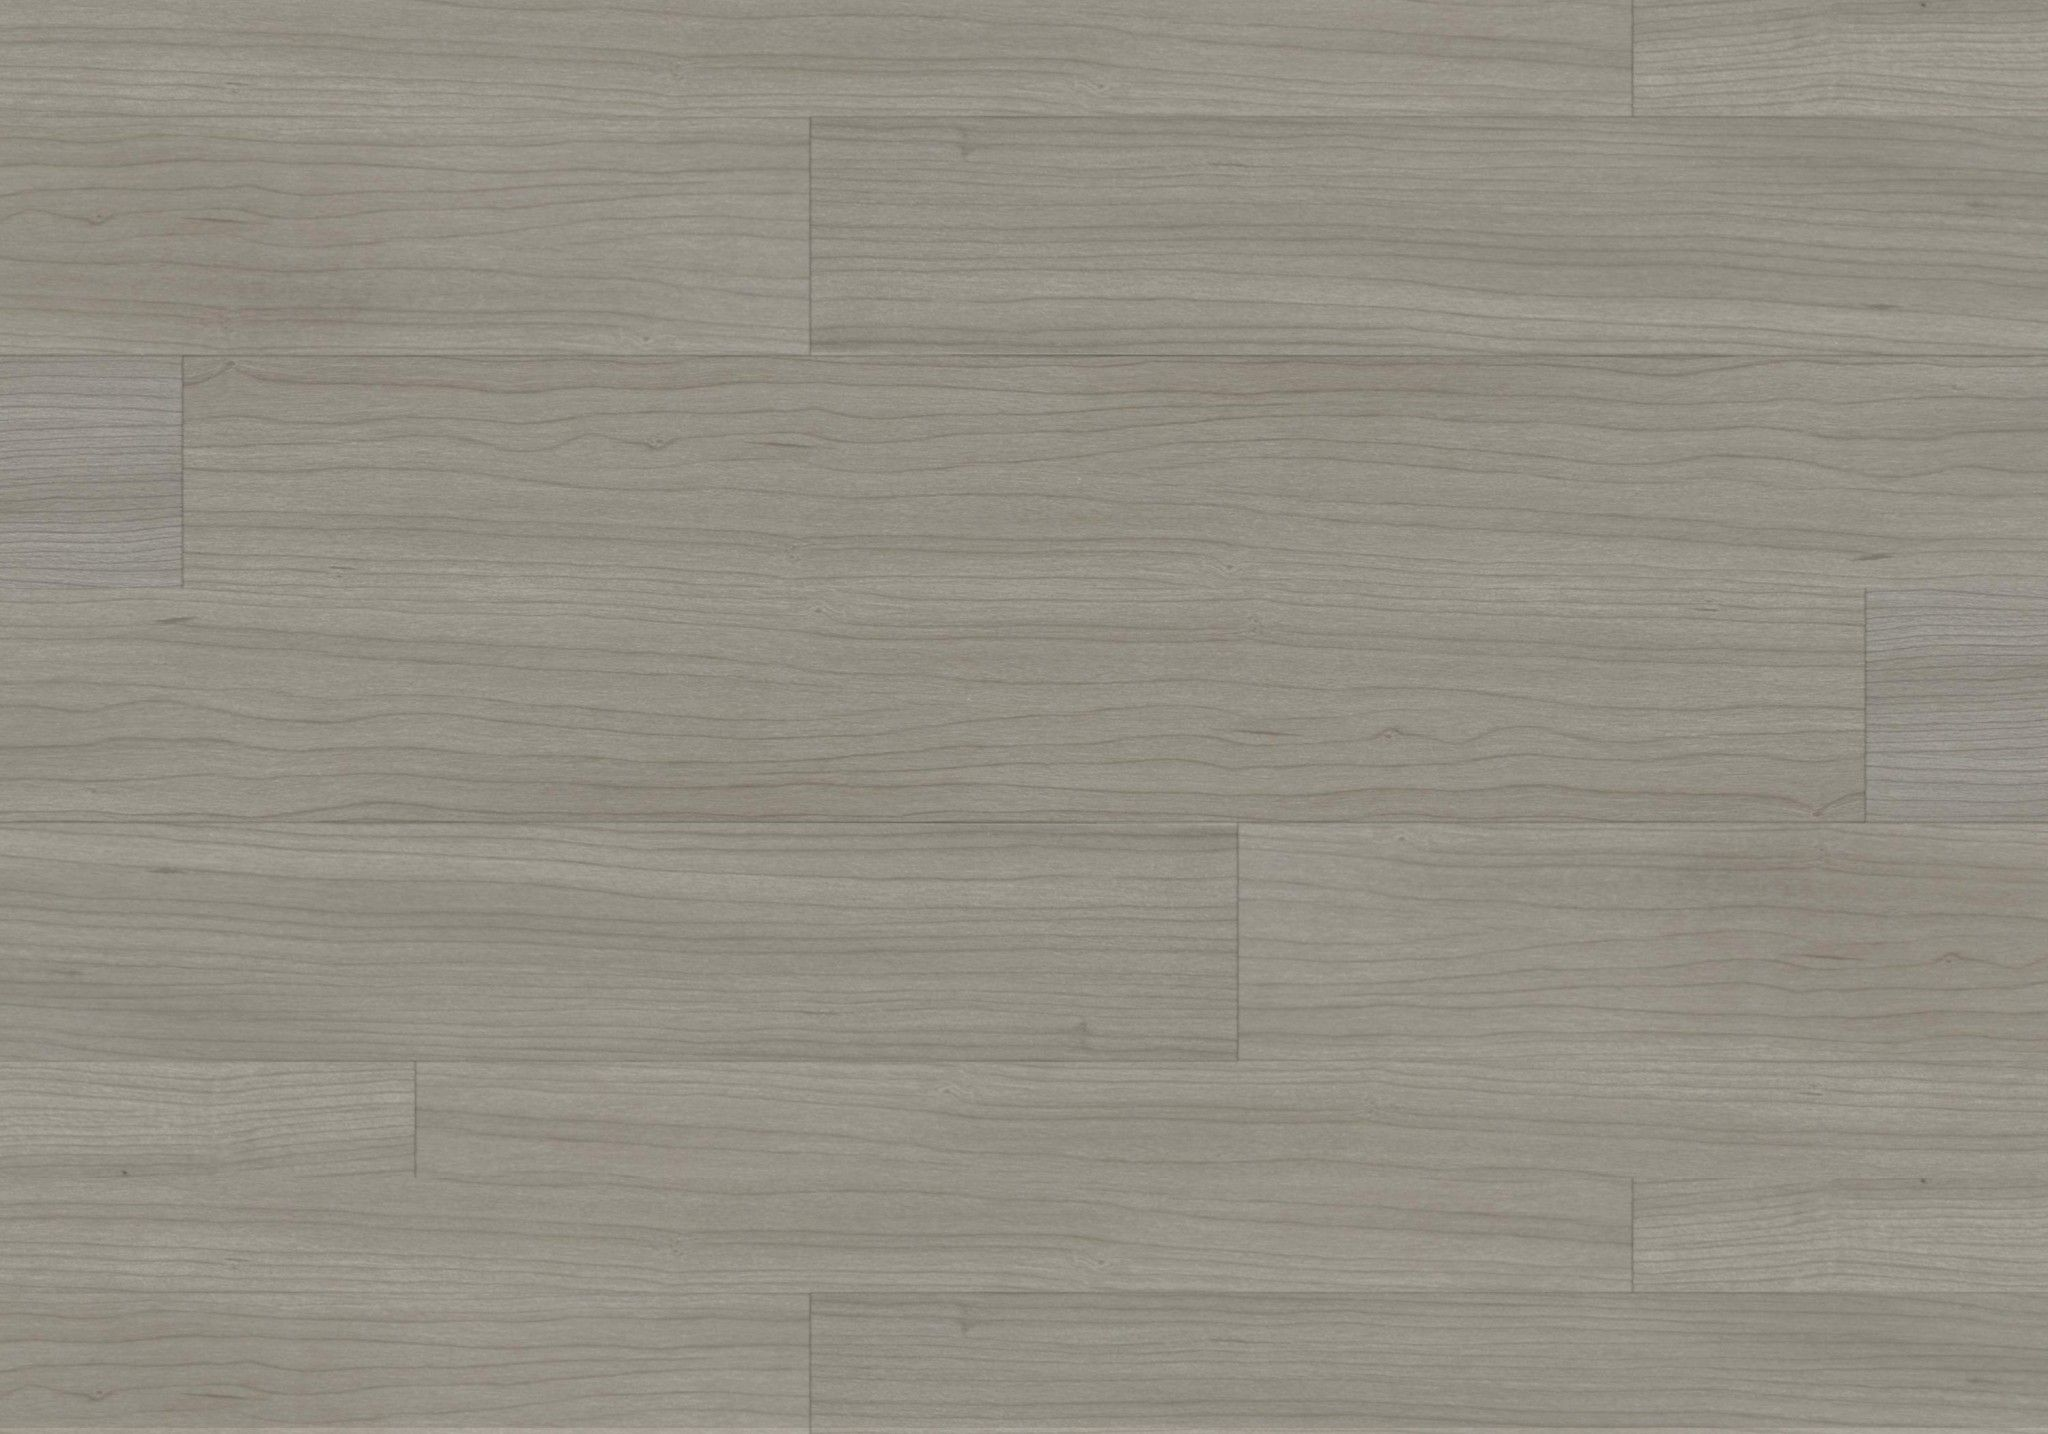 Discover Lauzonu0027s Hardwood Flooring With Our Travertine. This Magnific Hard Maple  Flooring From Our Line